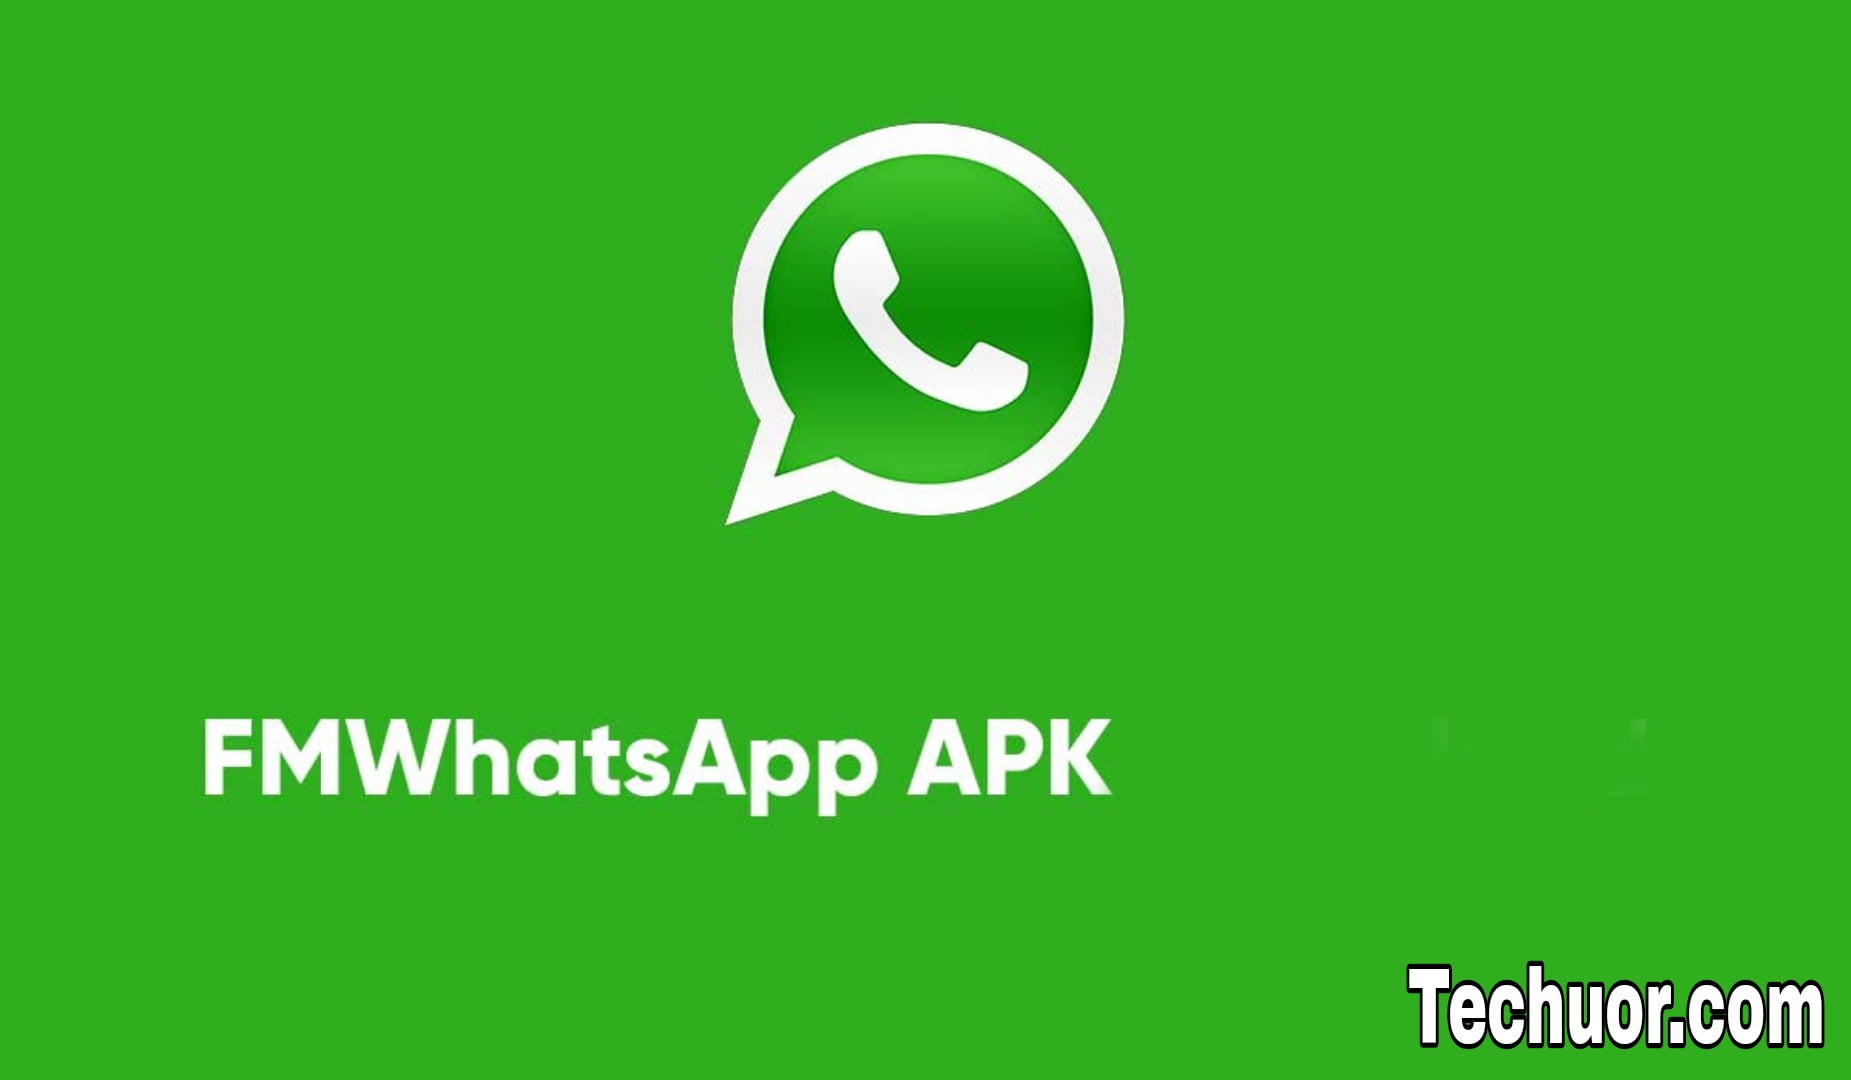 FMWhatsApp APK v17.40 Download (Official Latest Version)